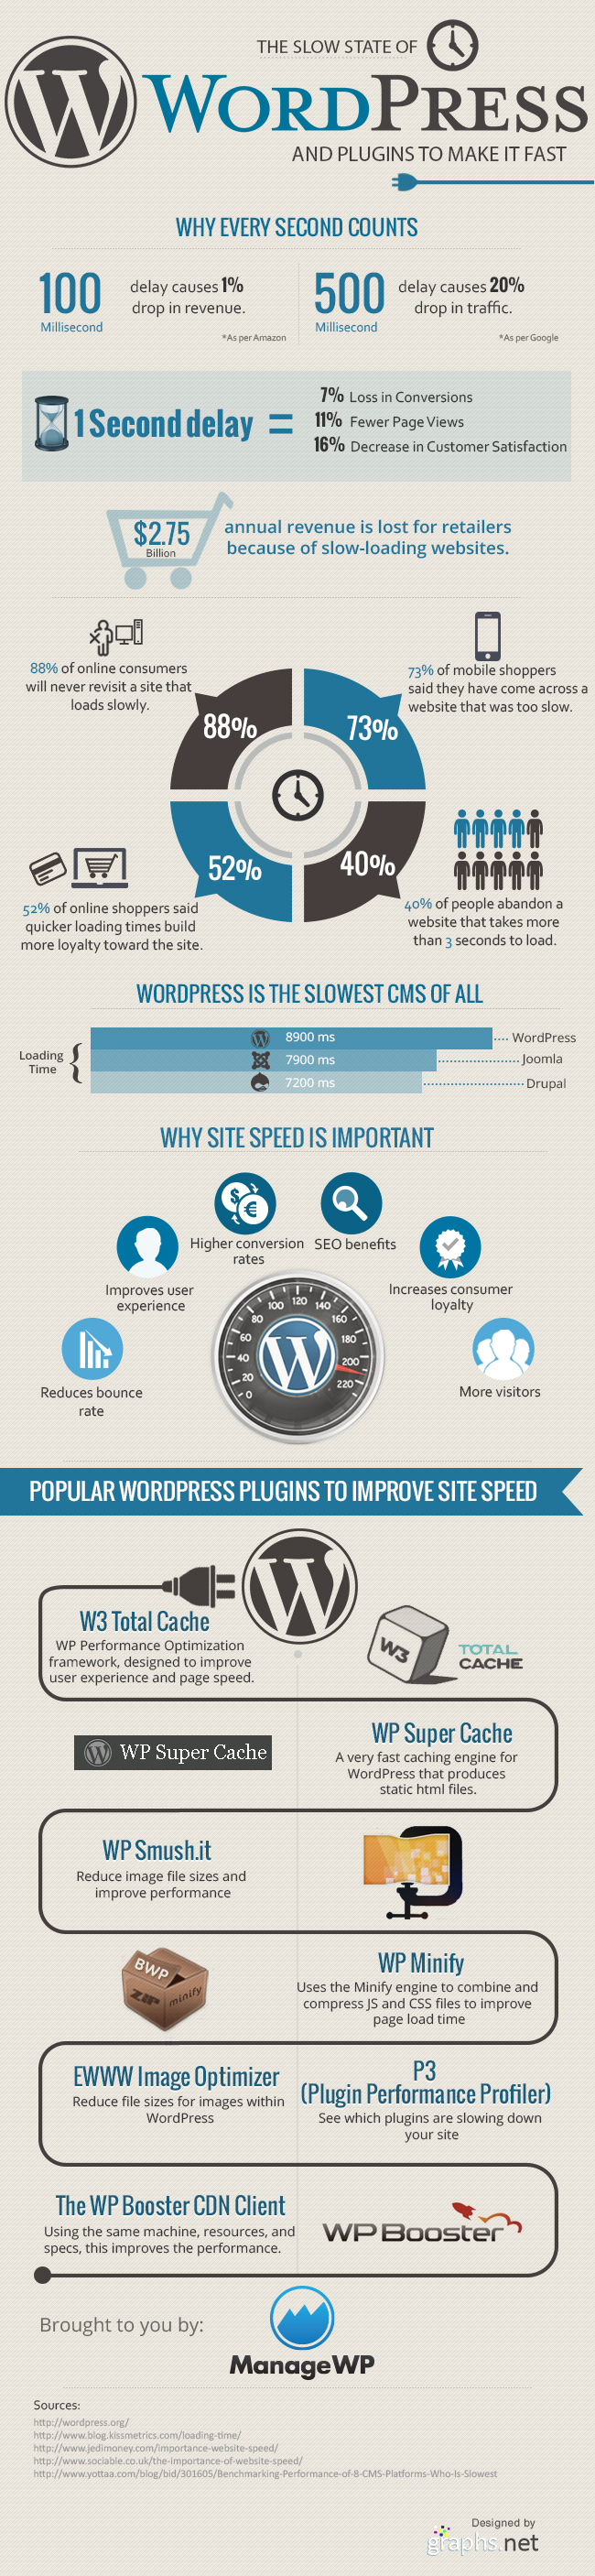 The-Slow-state-of-WordPress-and-Plugins-to-make-it-fast2